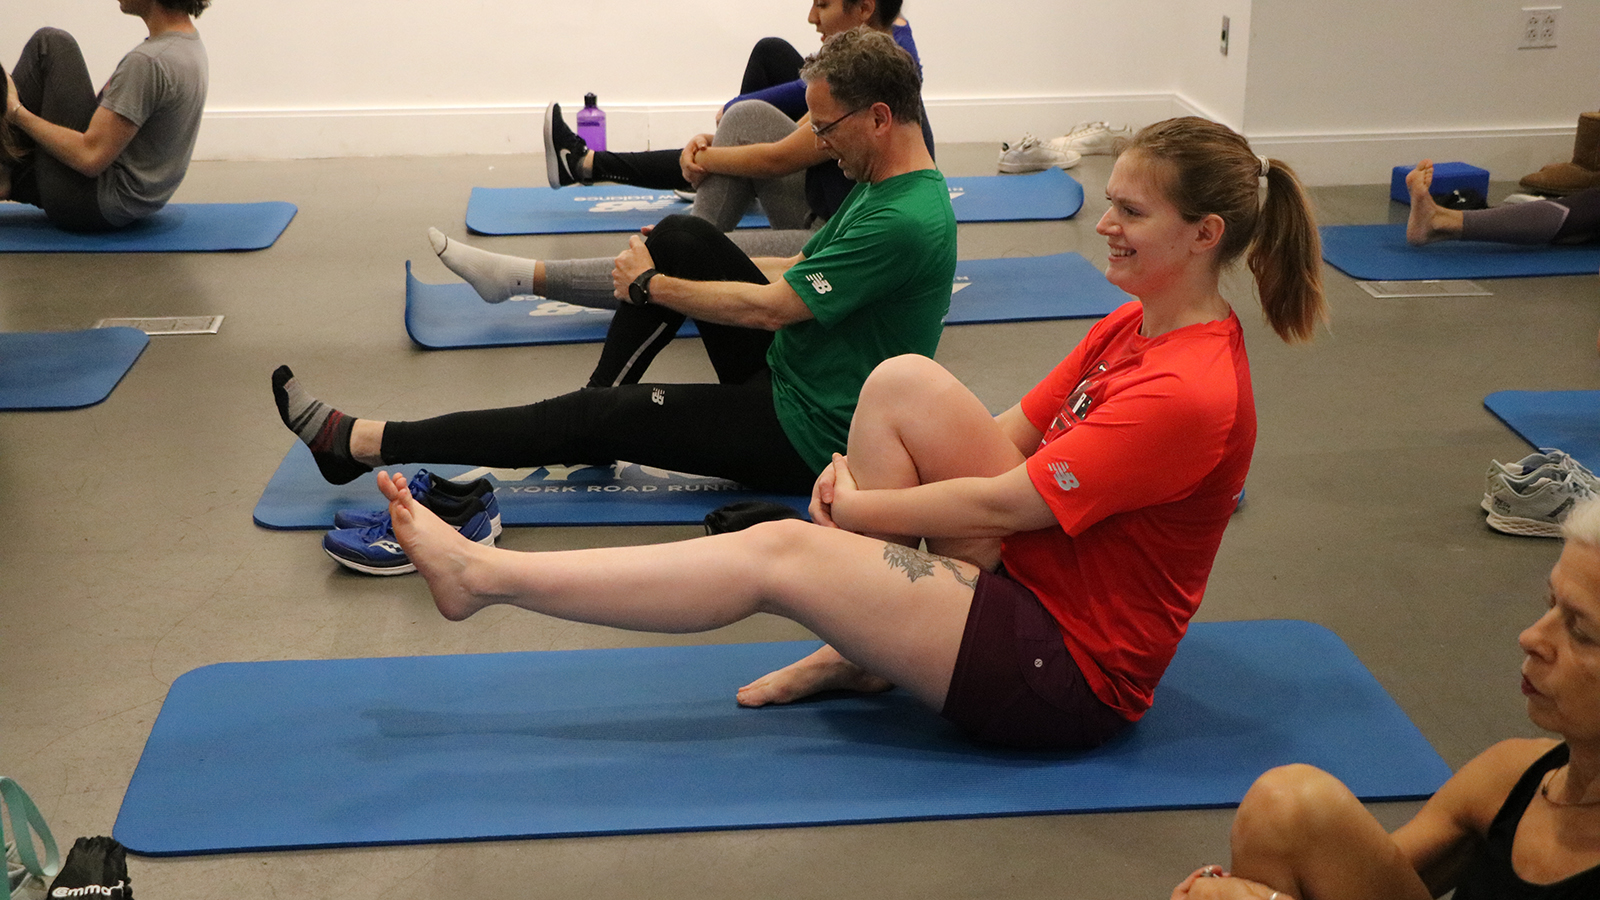 A core strength class in progress at the NYRR Run Center